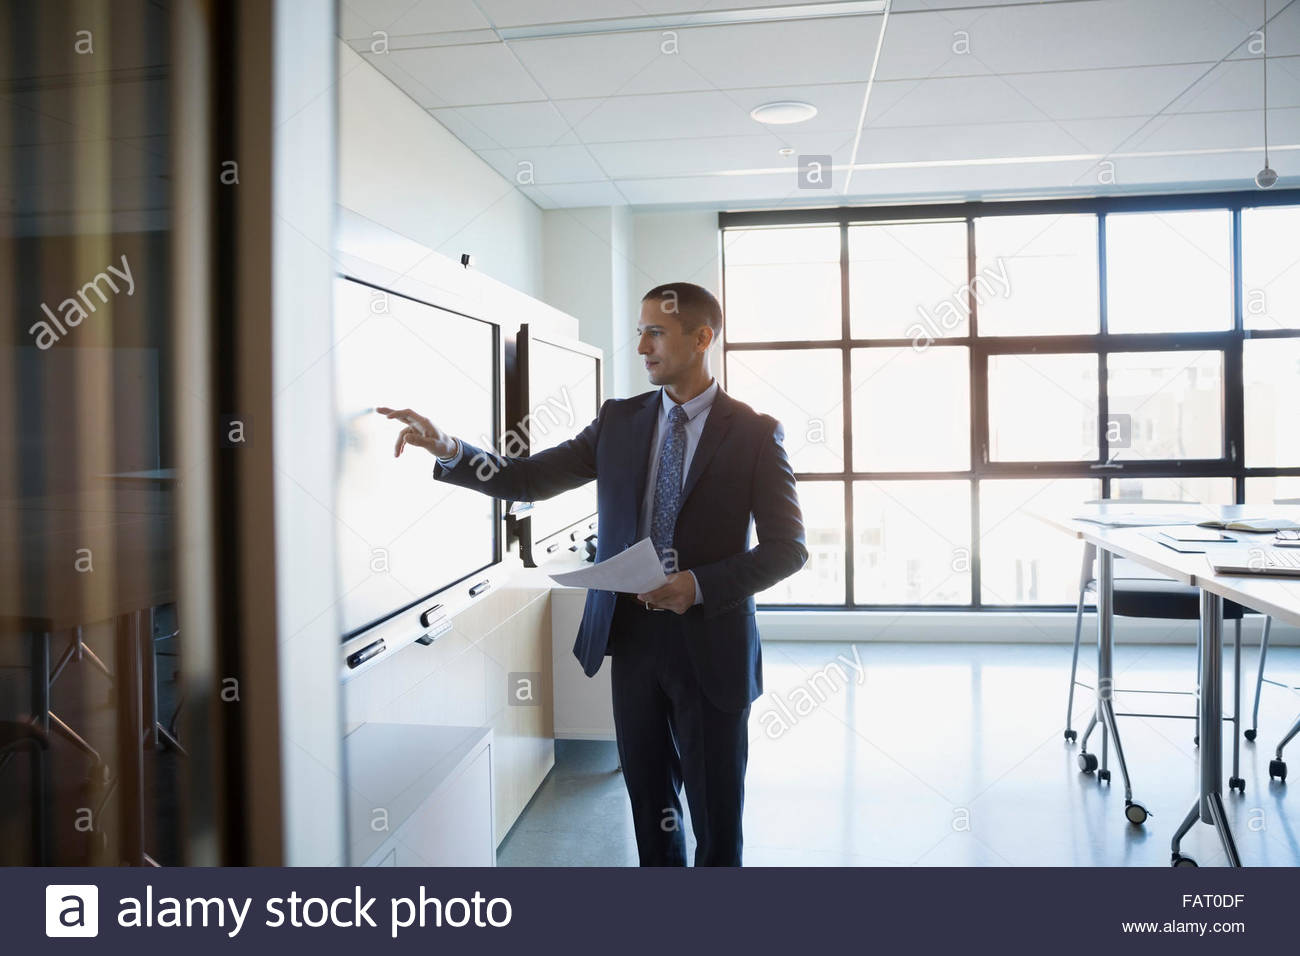 Businessman using touch screen in conference room - Stock Image